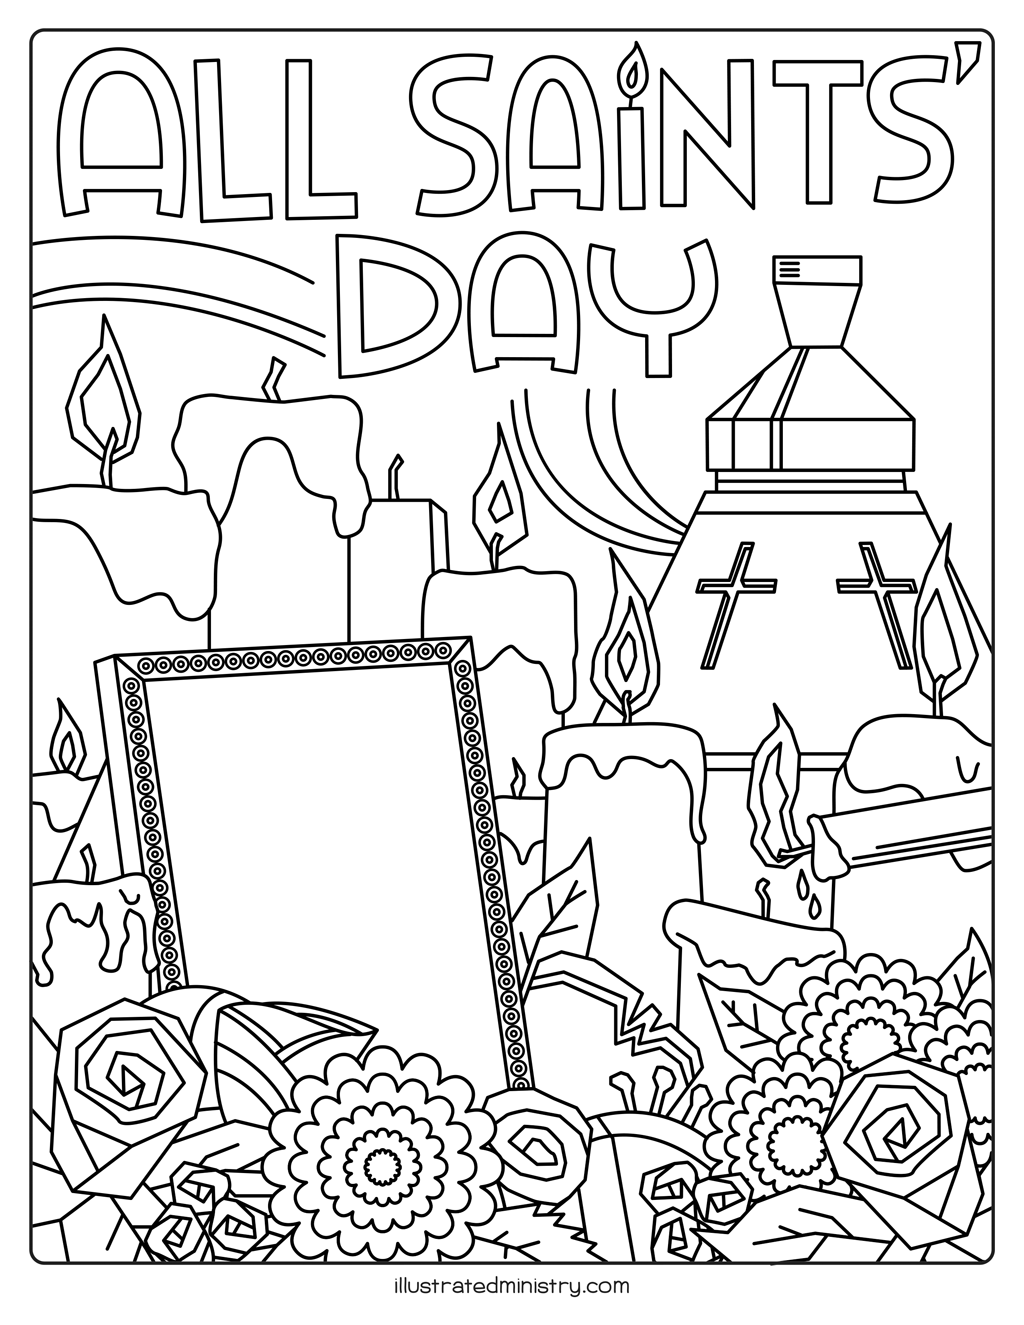 All Saints' Day Children's Coloring Page